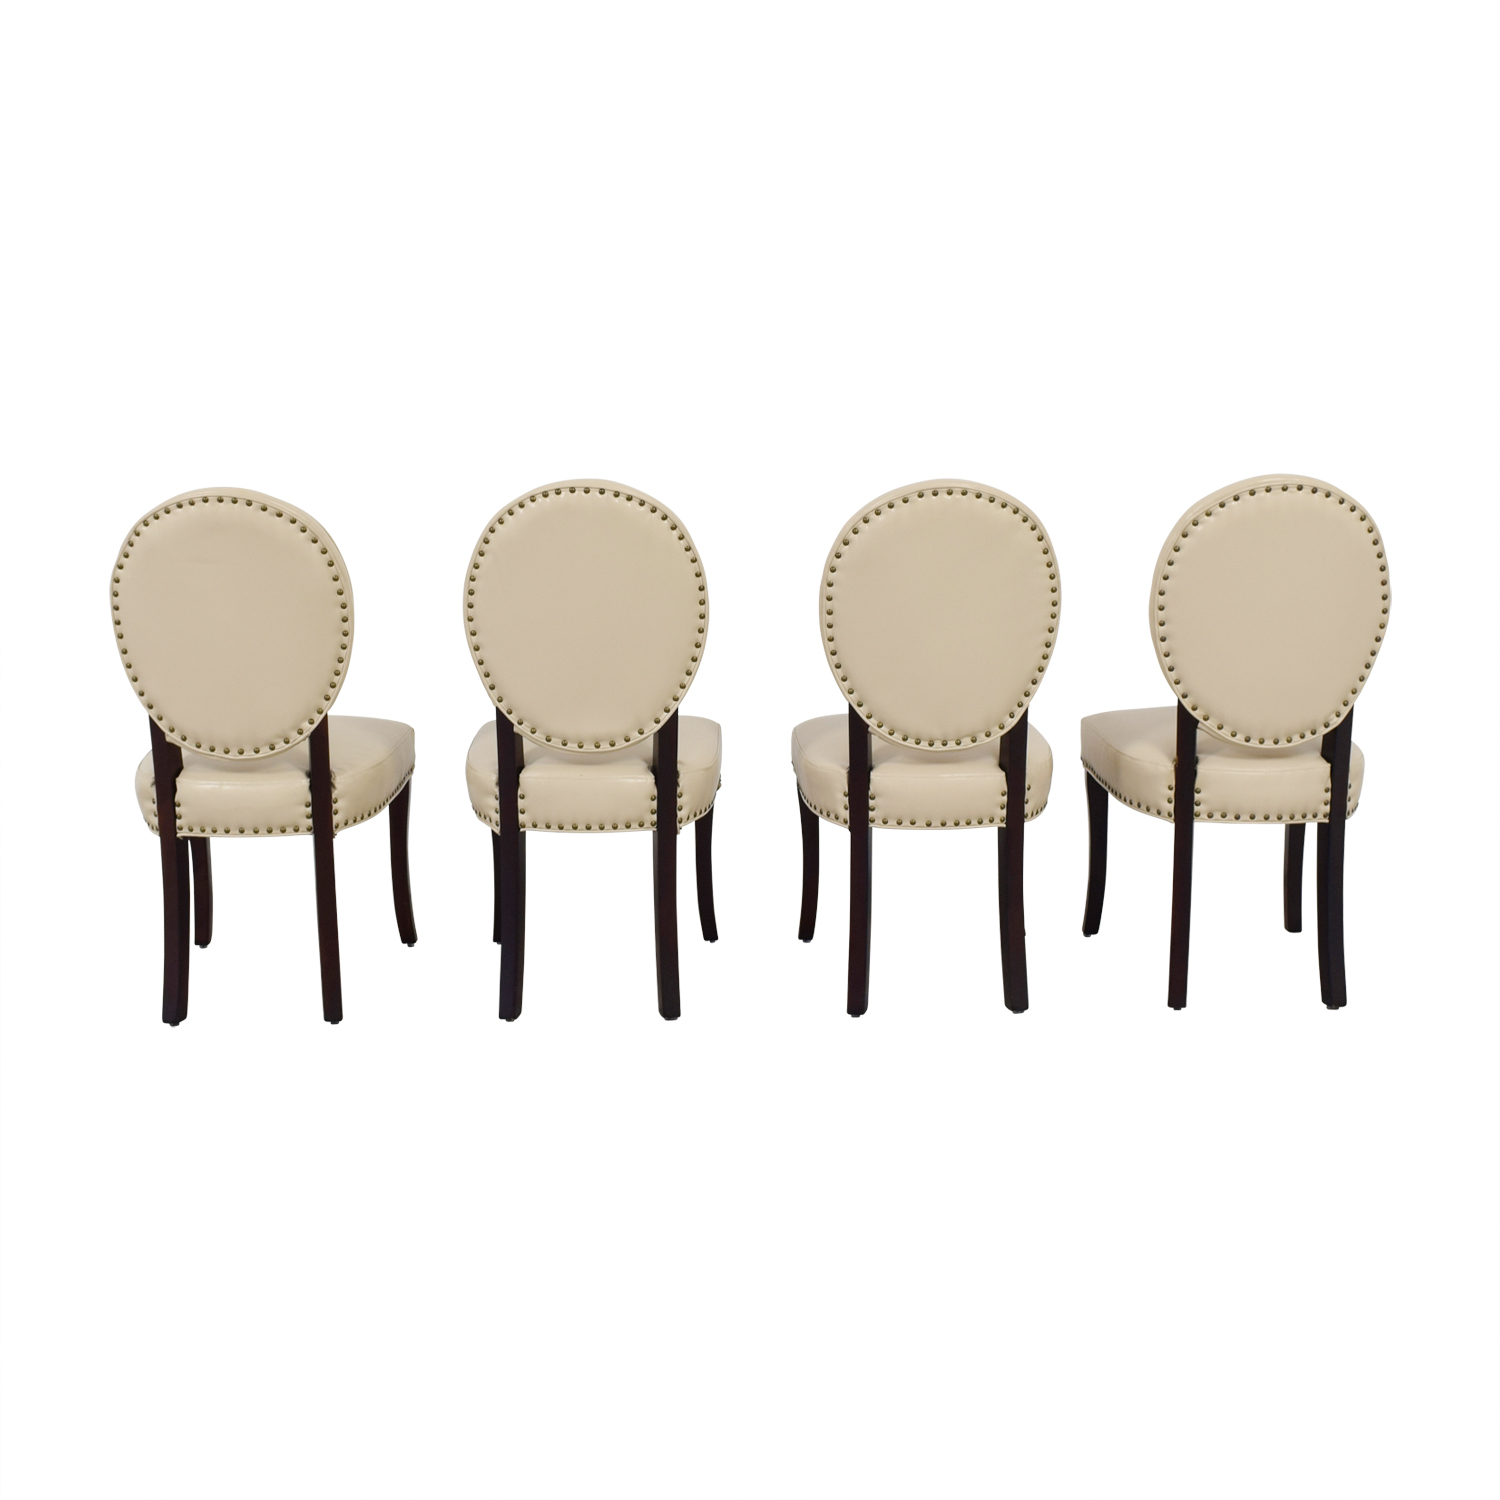 Pier 1 Imports Pier 1 Imports Cadence Ivory Nailhead Dining Chairs